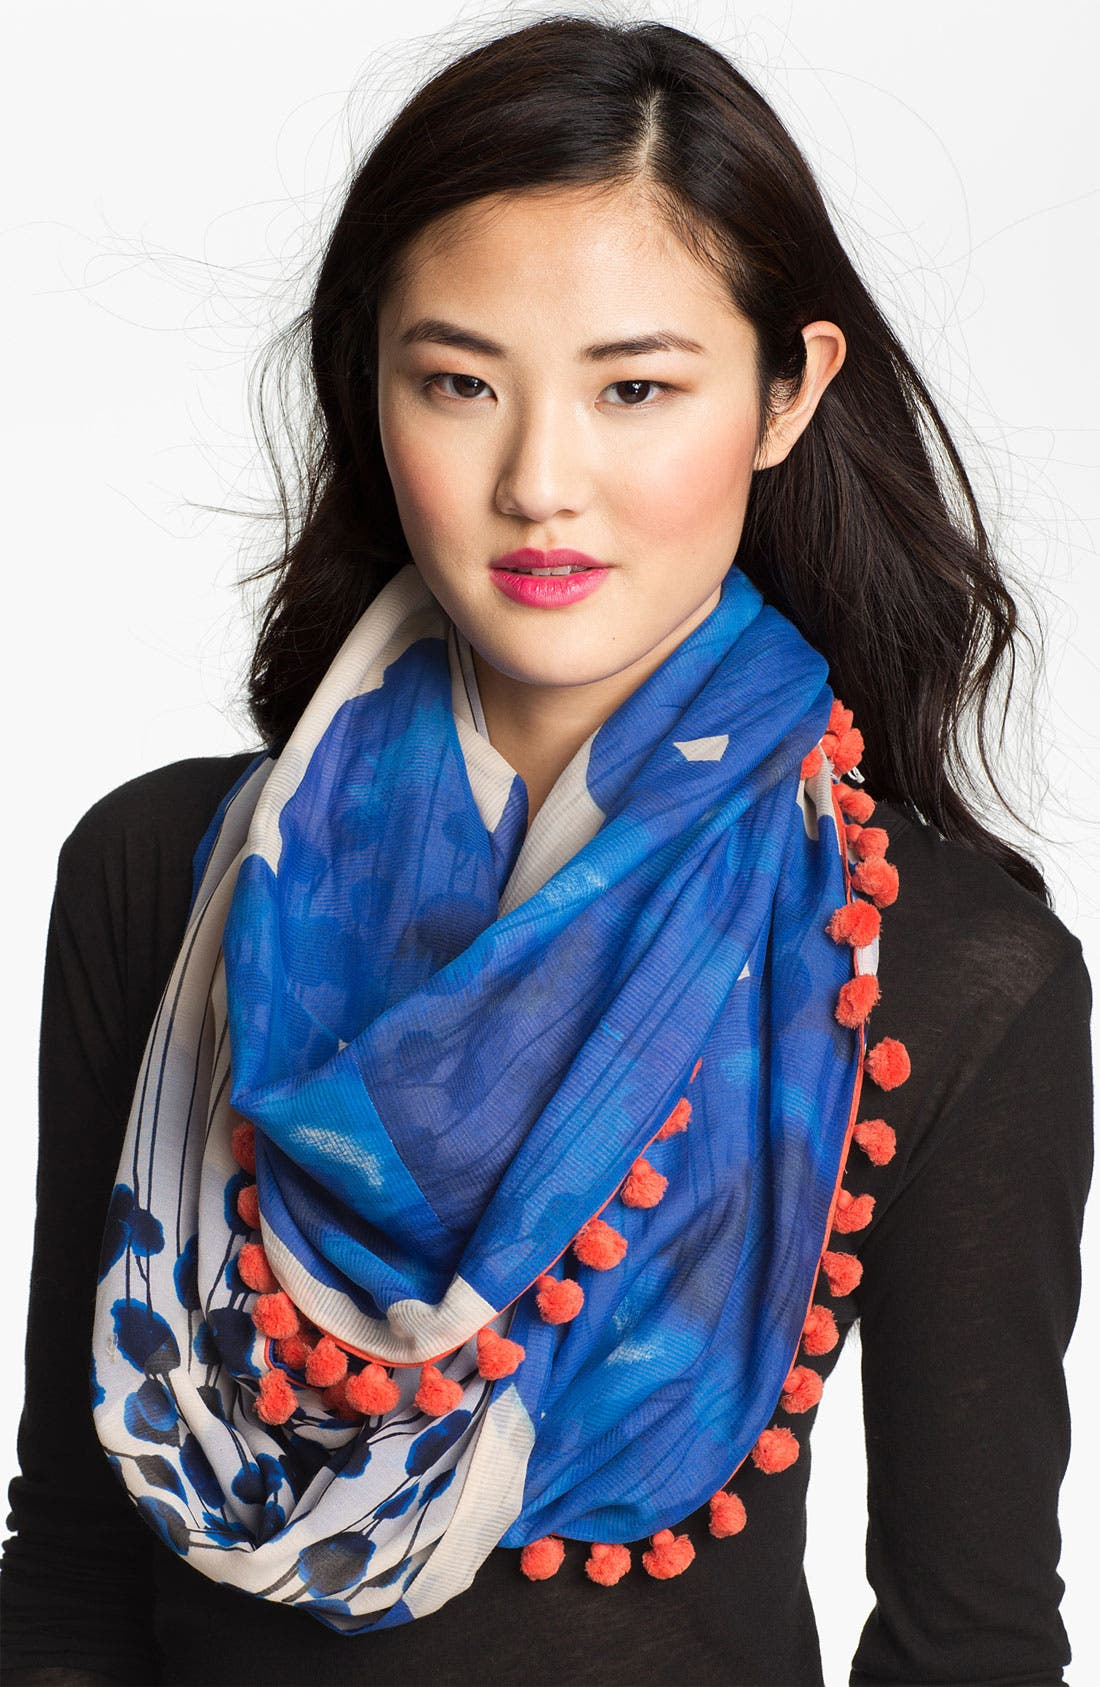 Alternate Image 1 Selected - Diane von Furstenberg Infinity Scarf